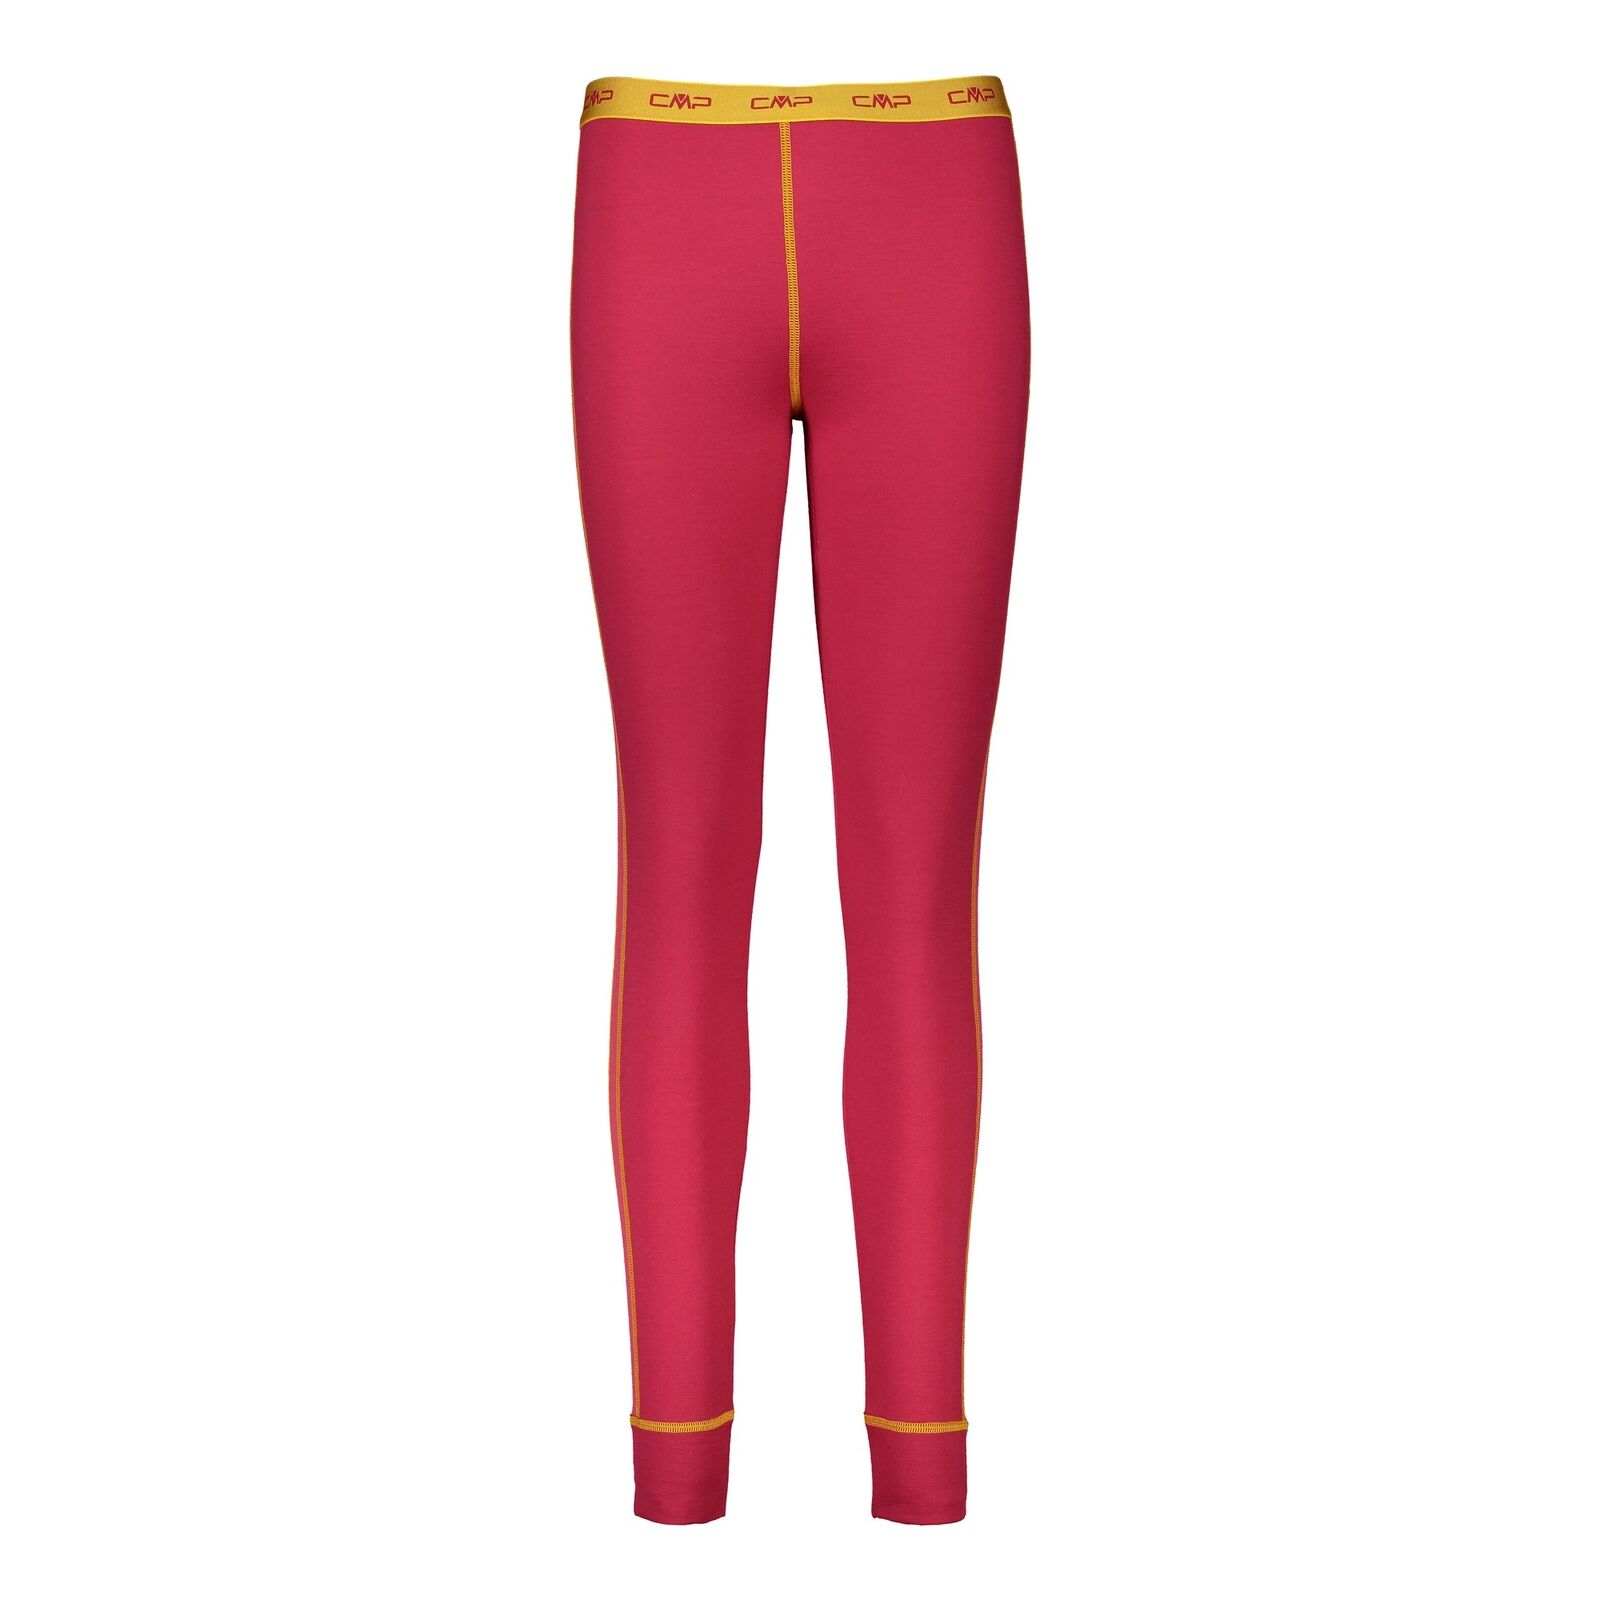 CMP Funktionsunterhose First Layer WOMAN PANT red wärmend isolierend